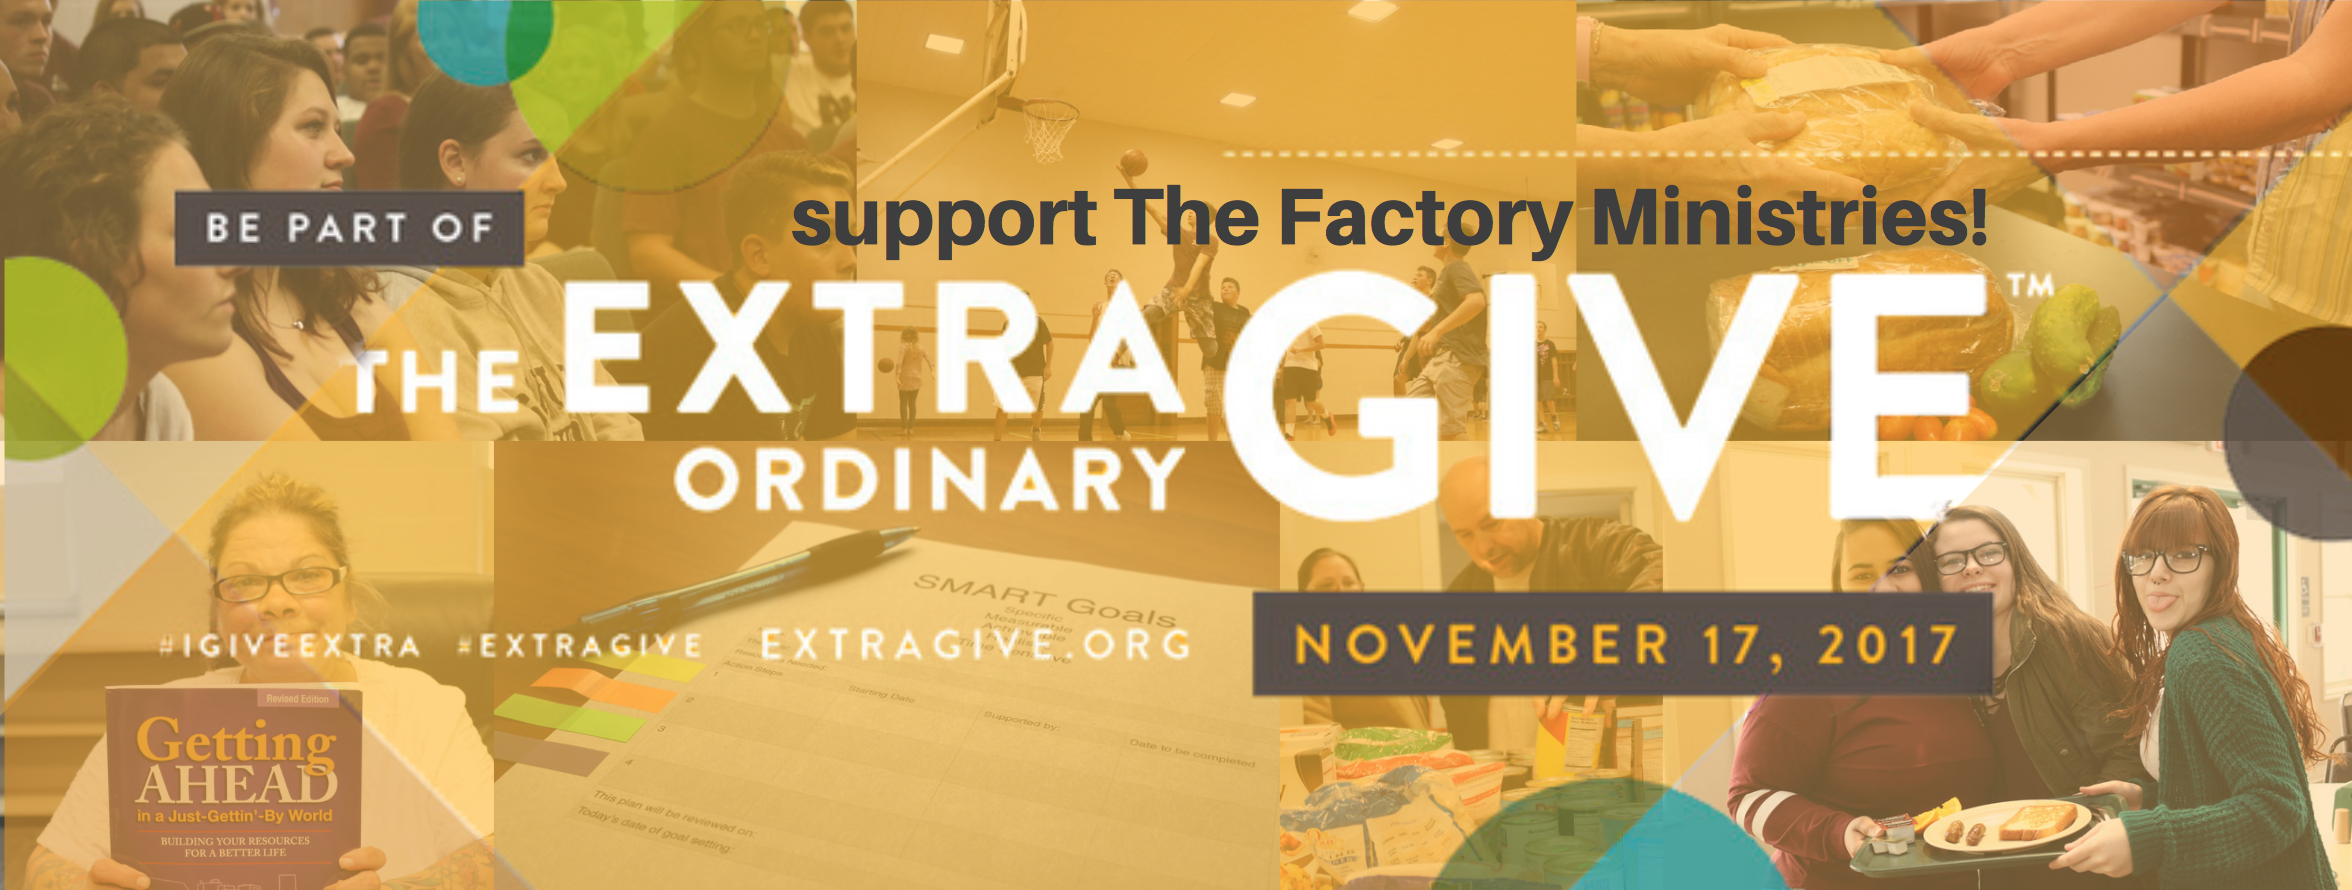 Click here to support The Factory Ministries for ExtraGive!